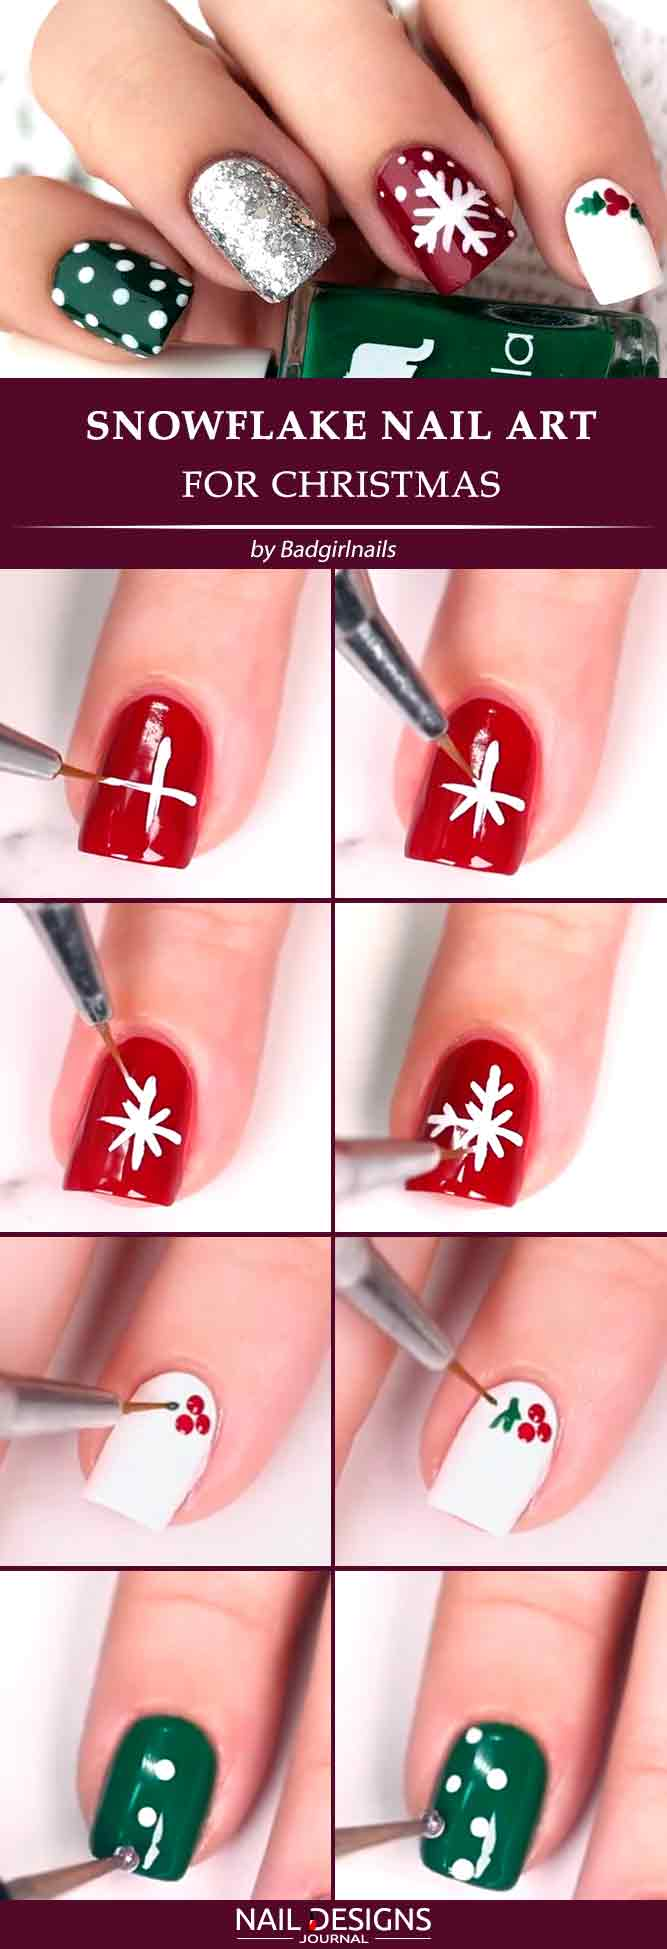 Snowflake Nail Art For Christmas